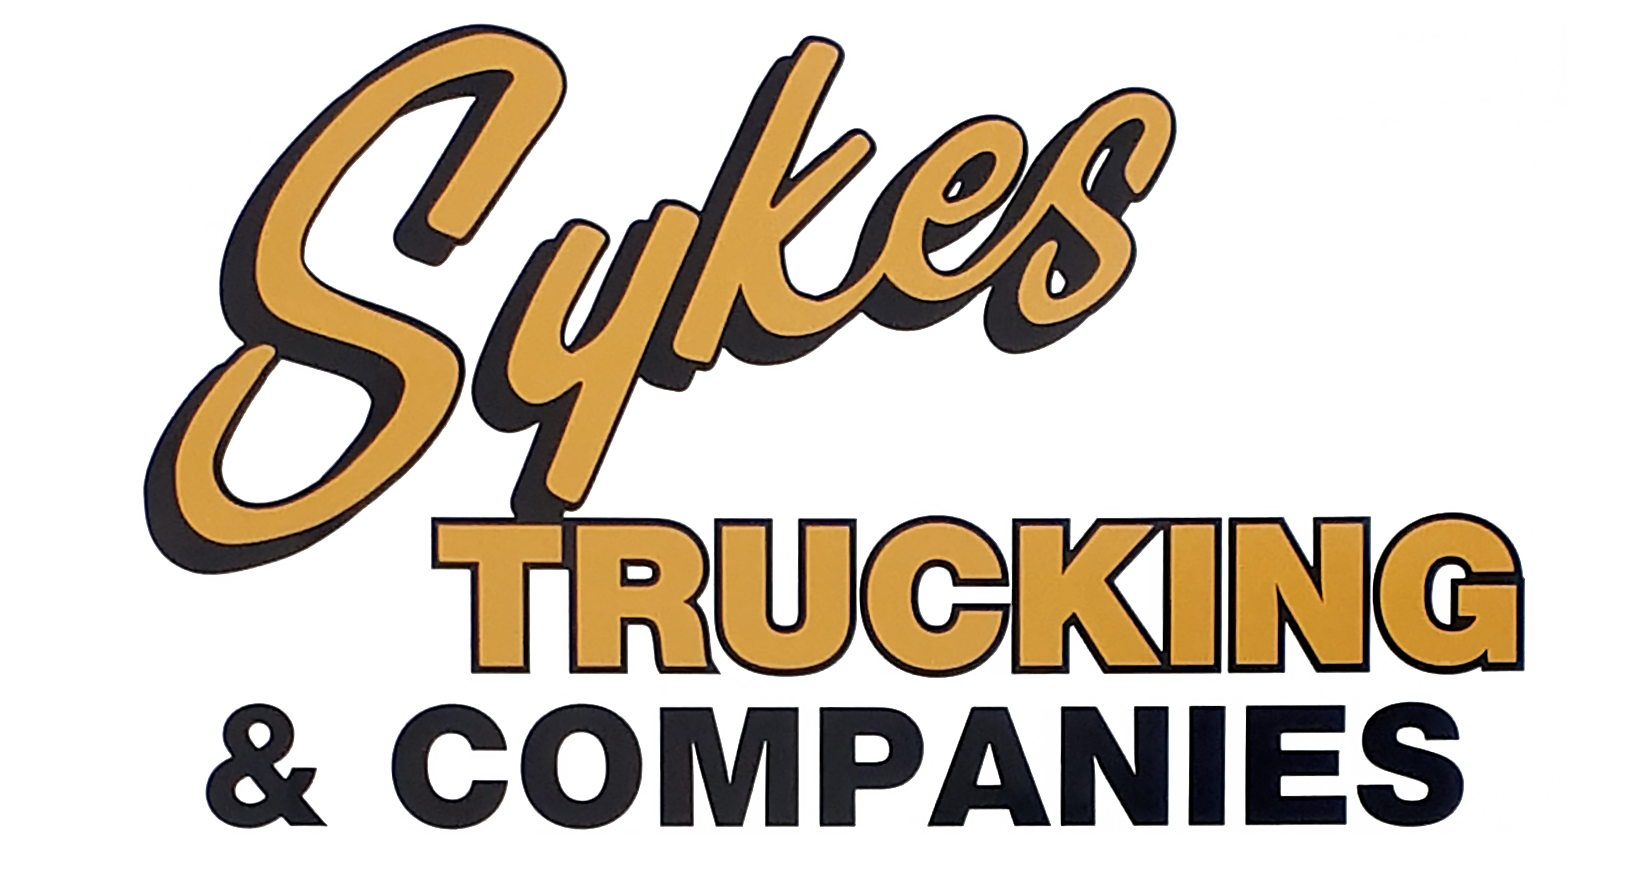 Sykes Trucking & Companies